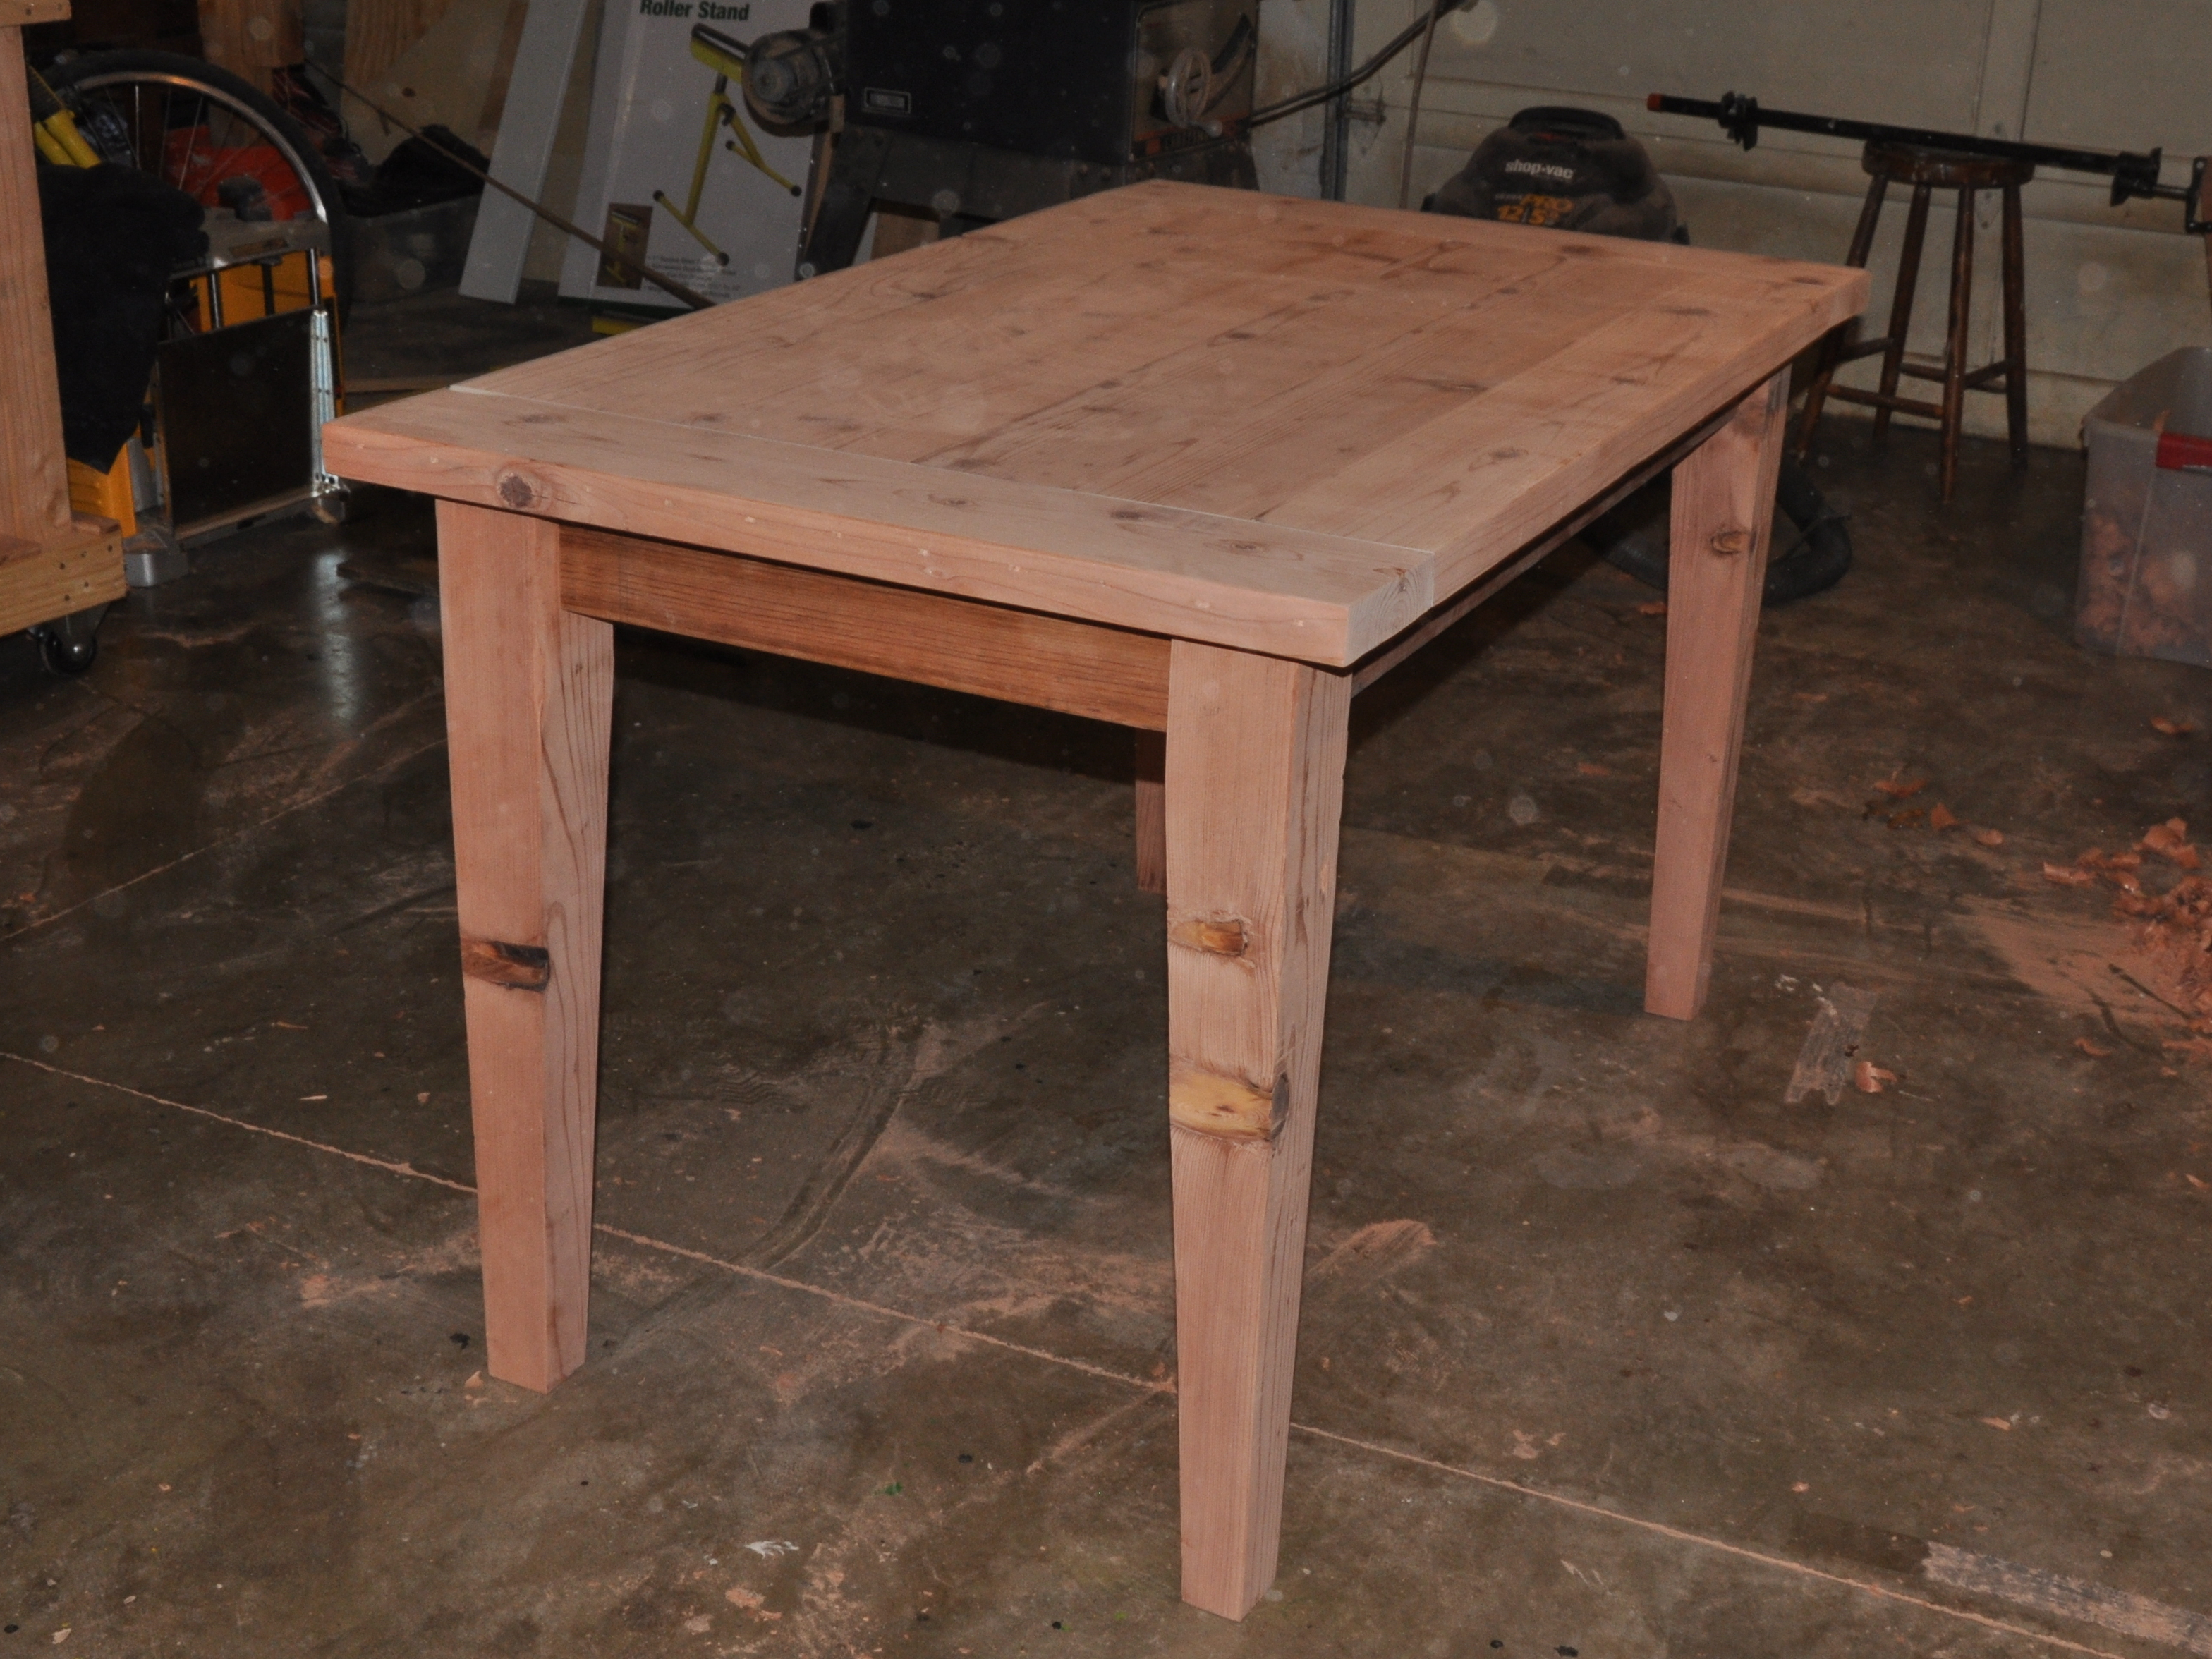 New Project: Wooden Table